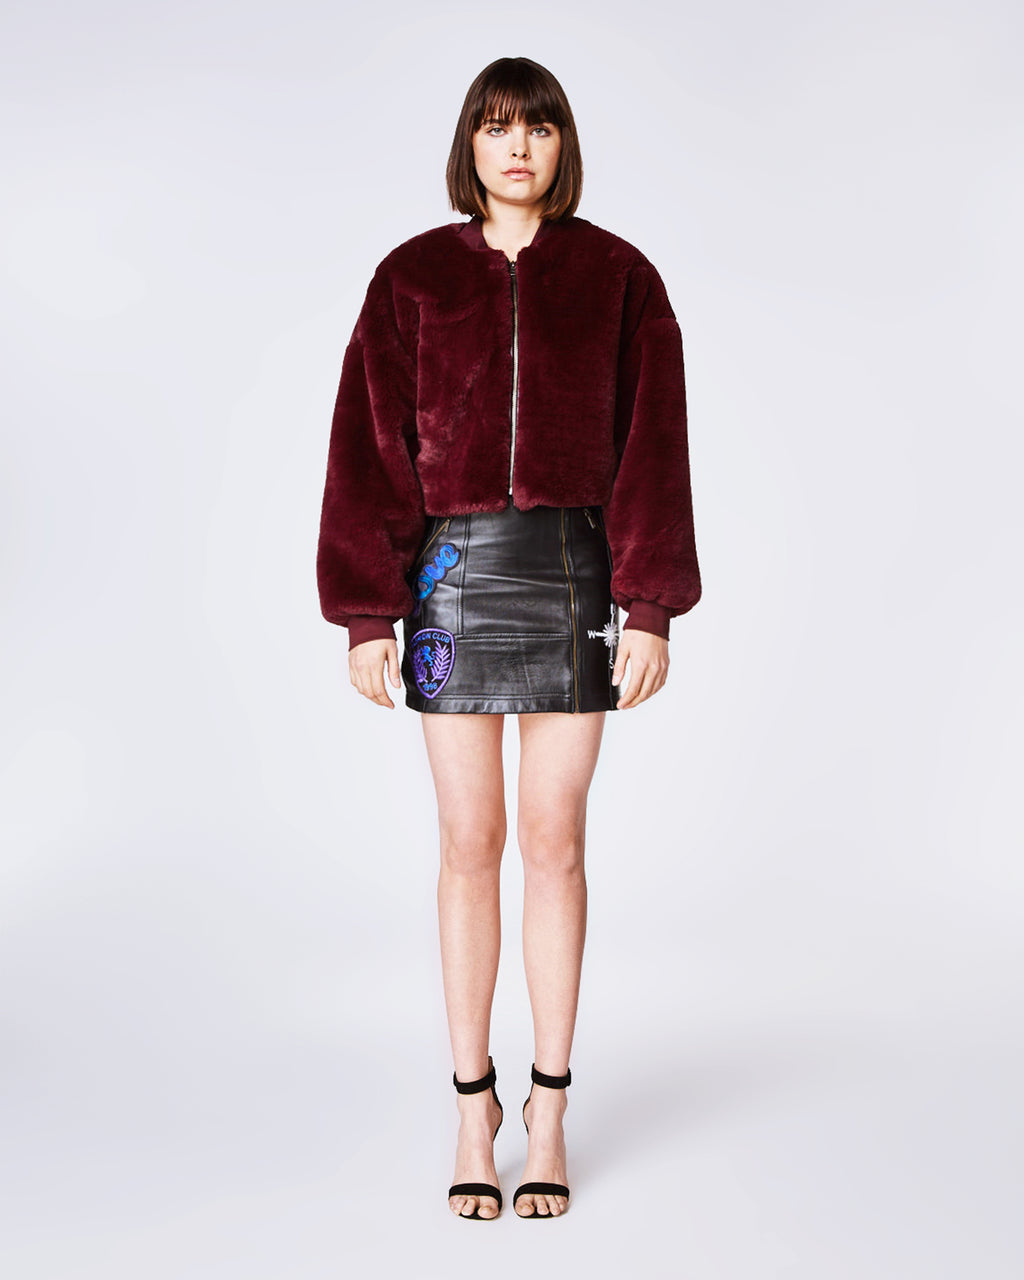 CF10259 - PLUSH FAUX FUR CHUBBY - outerwear - coats - In an ultra-soft faux fur, this wine-colored cropped jacket can easily be paired with jeans andsneakers for a chic and casual look. Finished withan exposed zipper for closure and fully lined.